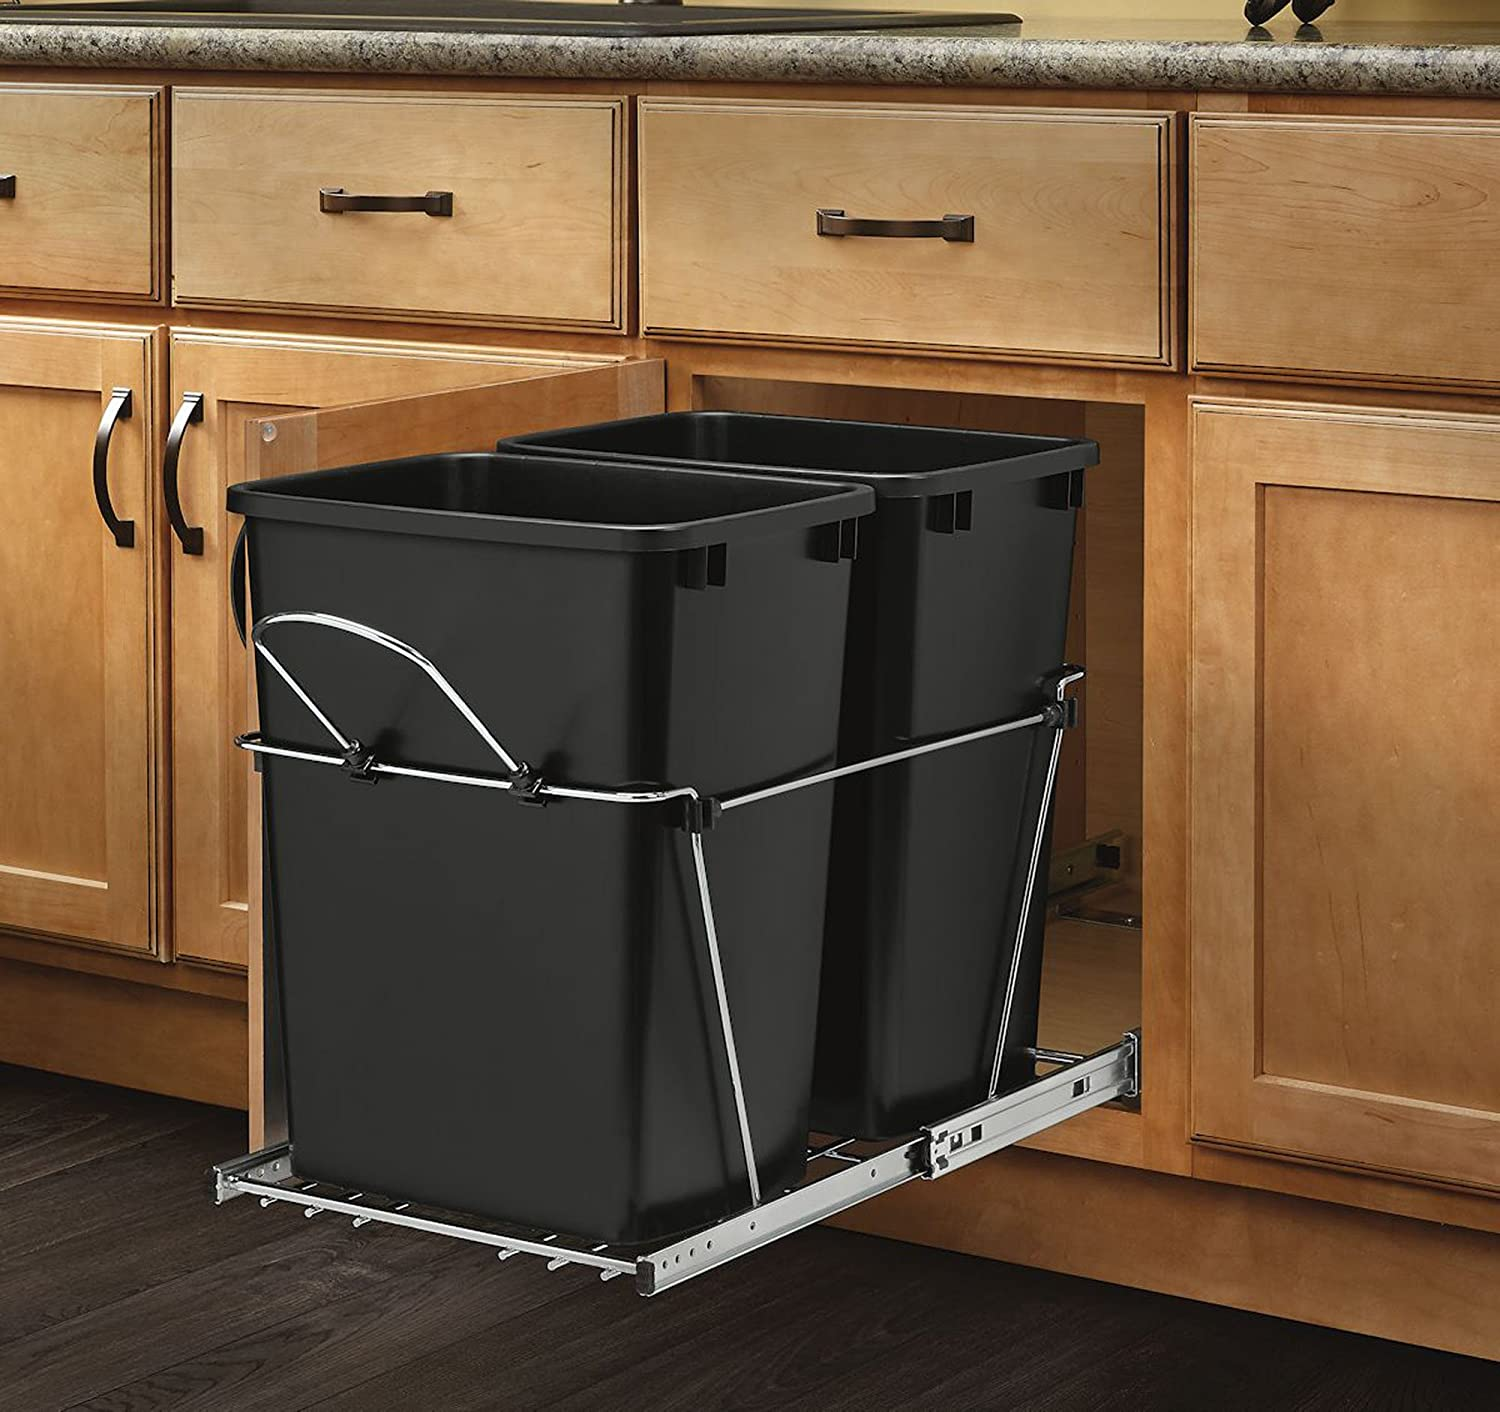 pull out trash garbage can waste container kitchen cabinet. Black Bedroom Furniture Sets. Home Design Ideas